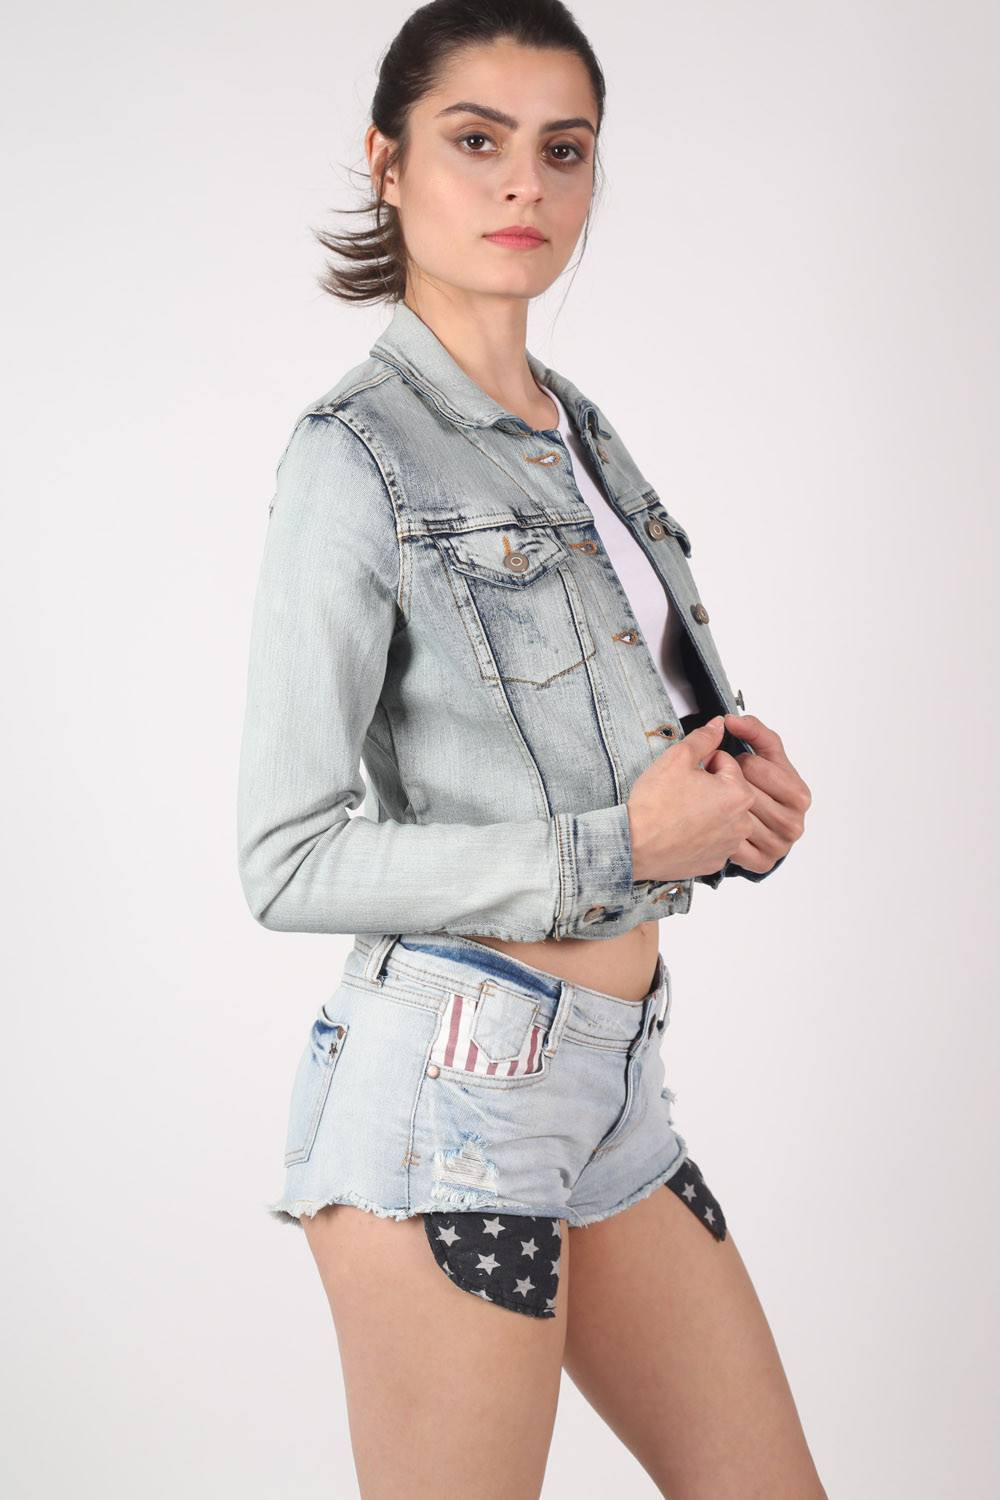 Vintage 2 Pocket Long Sleeve Denim Jacket in Light Denim 0